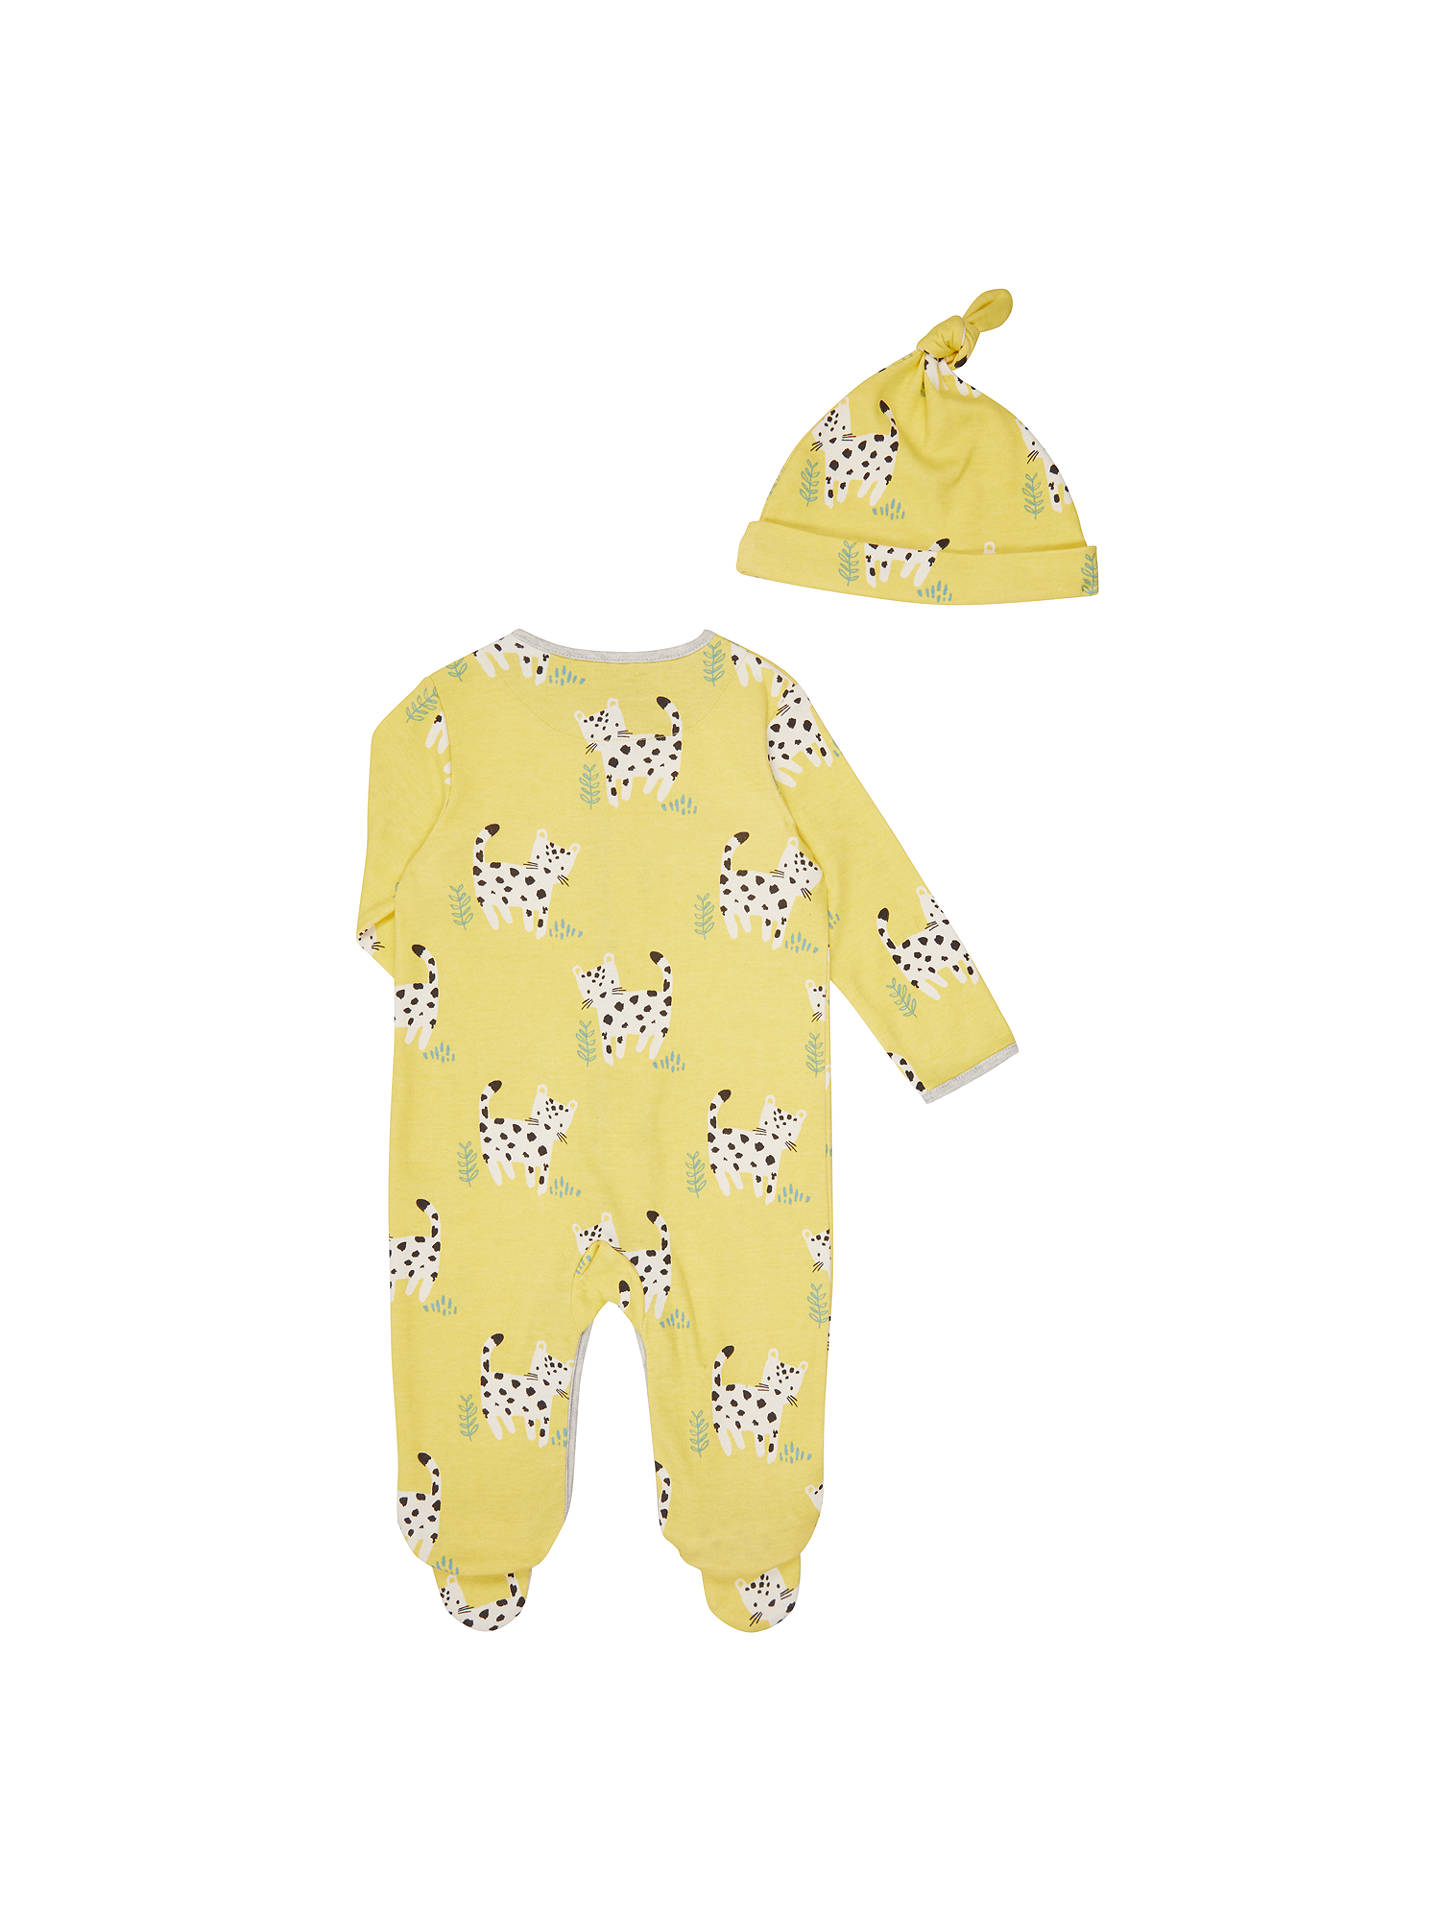 BuyJohn Lewis Baby Leopard Sleepsuit and Hat, Yellow/Multi, Newborn Online at johnlewis.com